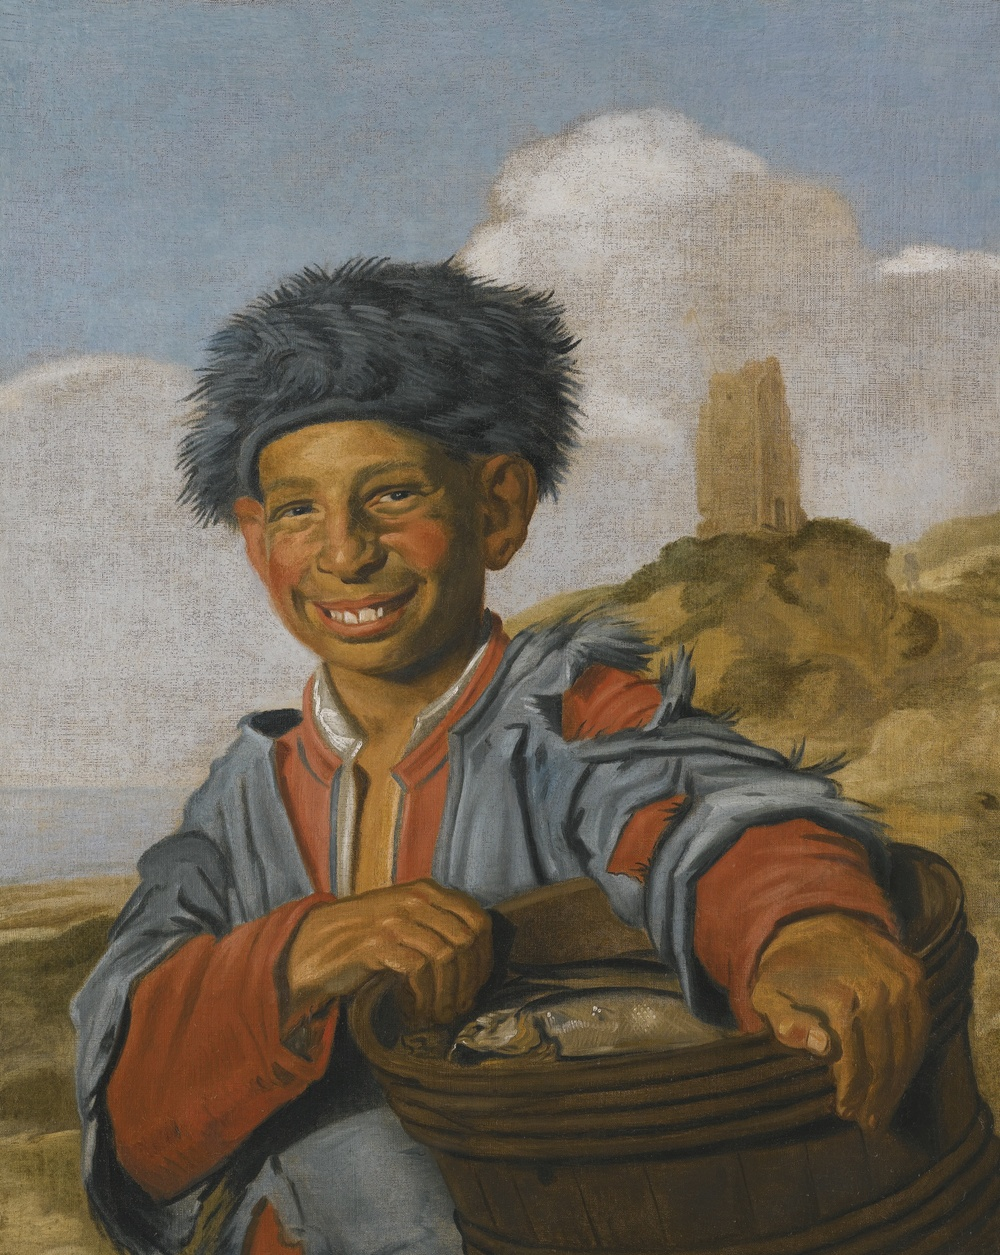 The  Laughing Fisherboy  by Frans Hals. Available  here .